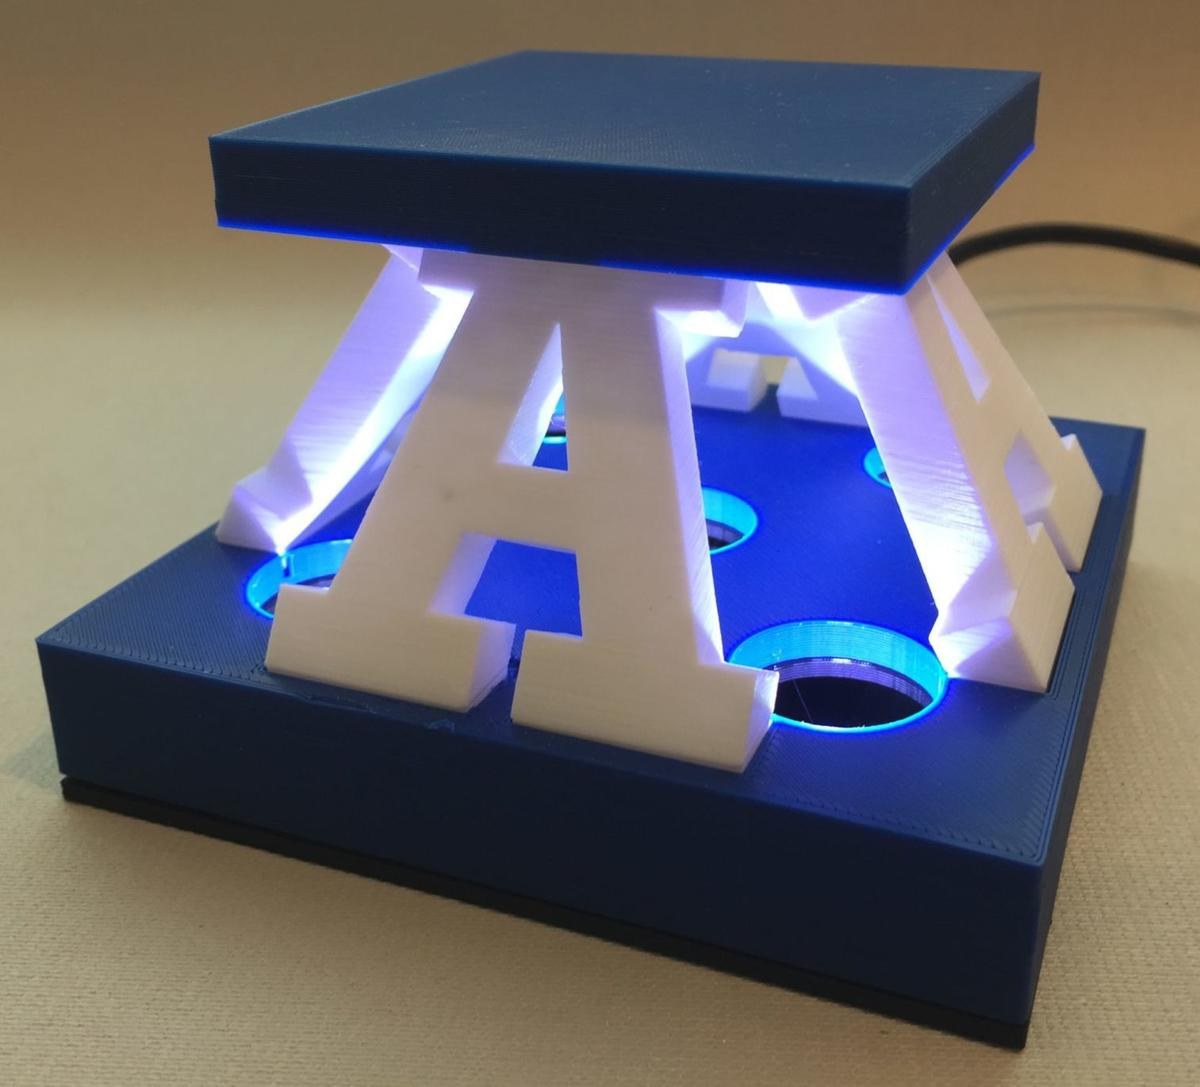 Light the A: USU brothers build internet-connected Aggie memorabilia